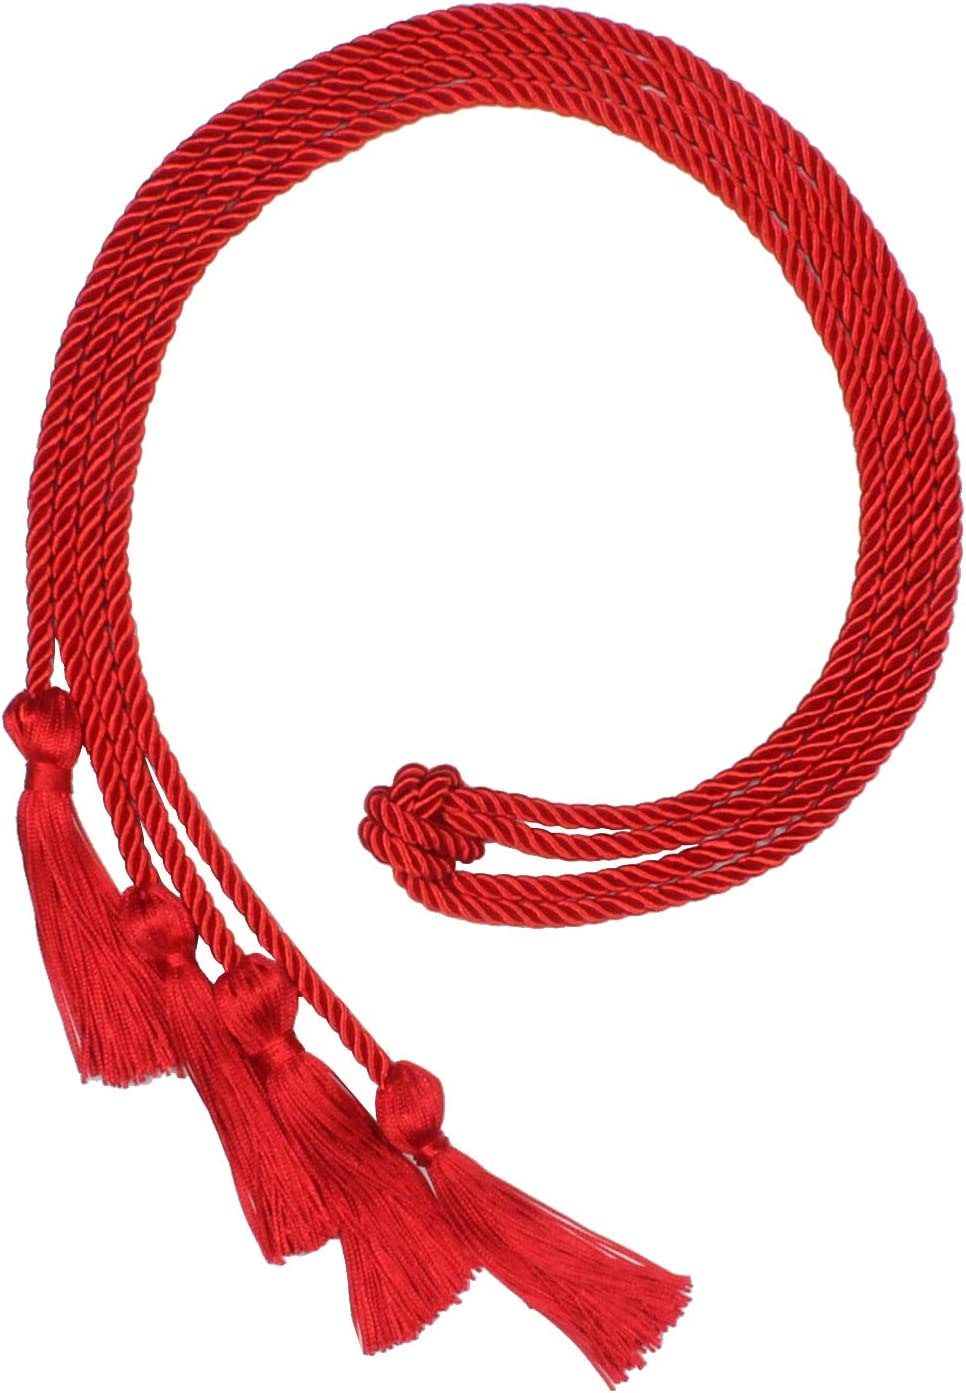 CHGD Graduation Polyester Honor Cords Double Honor Cords(Two Root)